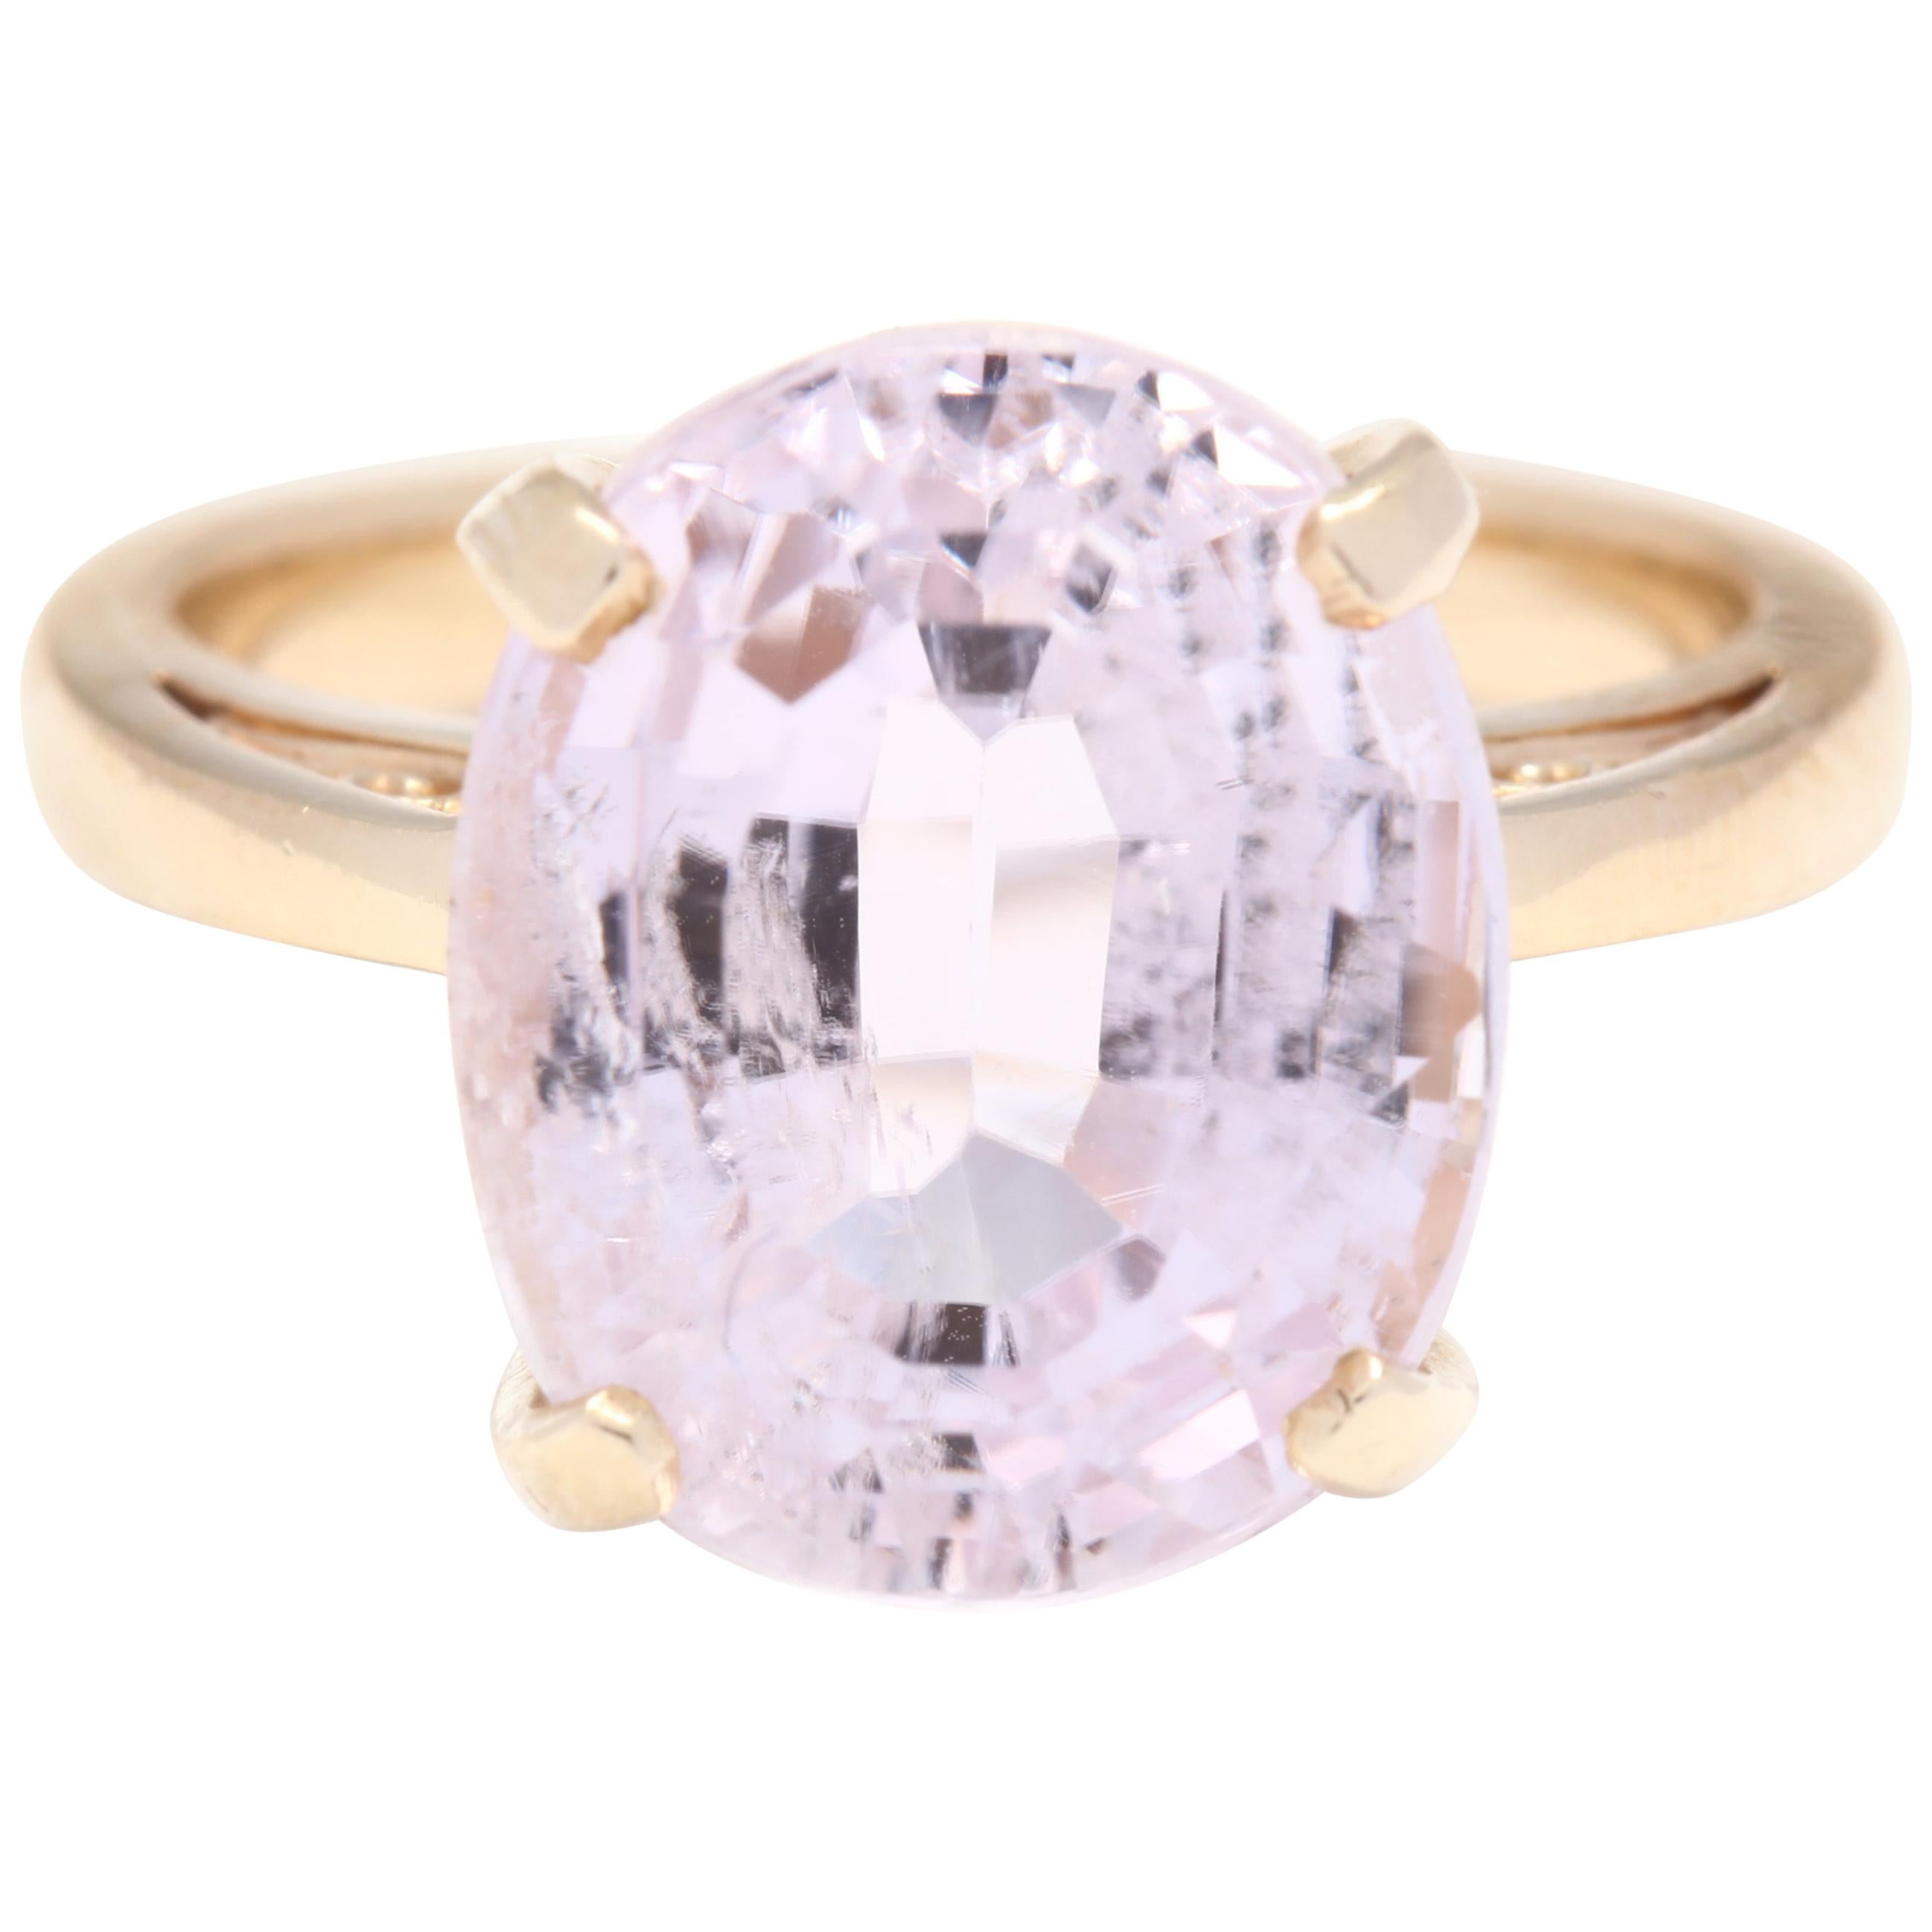 14 Karat Yellow Gold and Kunzite Solitaire Ring, Pink Cocktail Ring